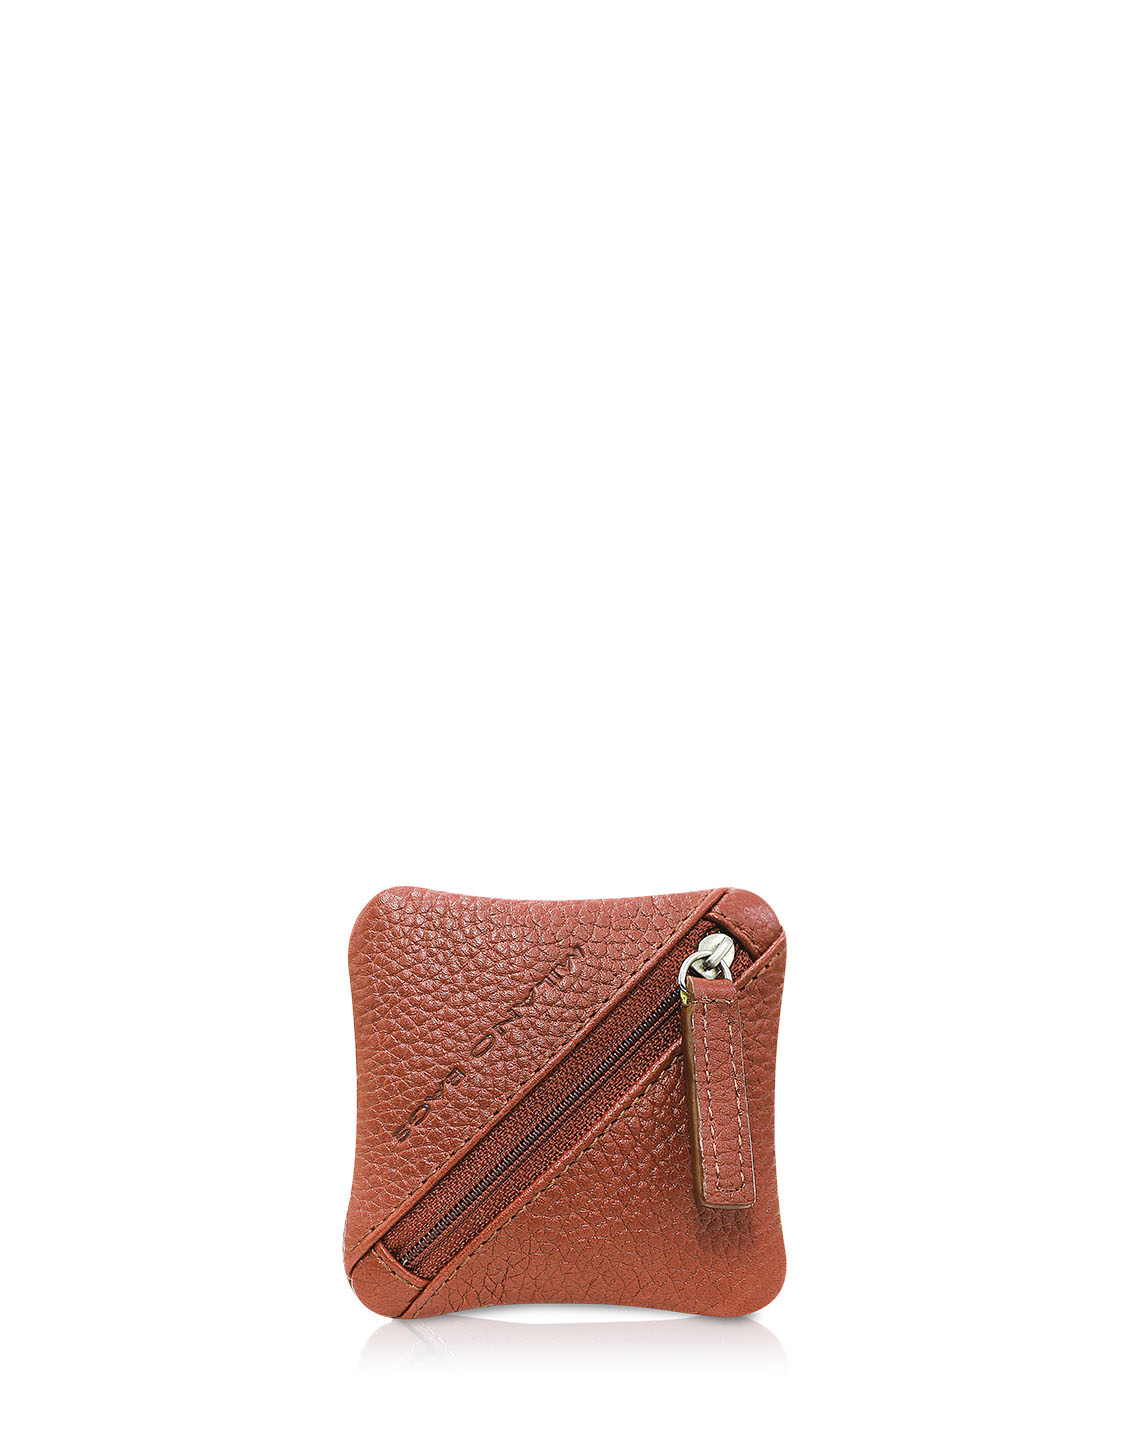 Monedero M-79 Color Naranja